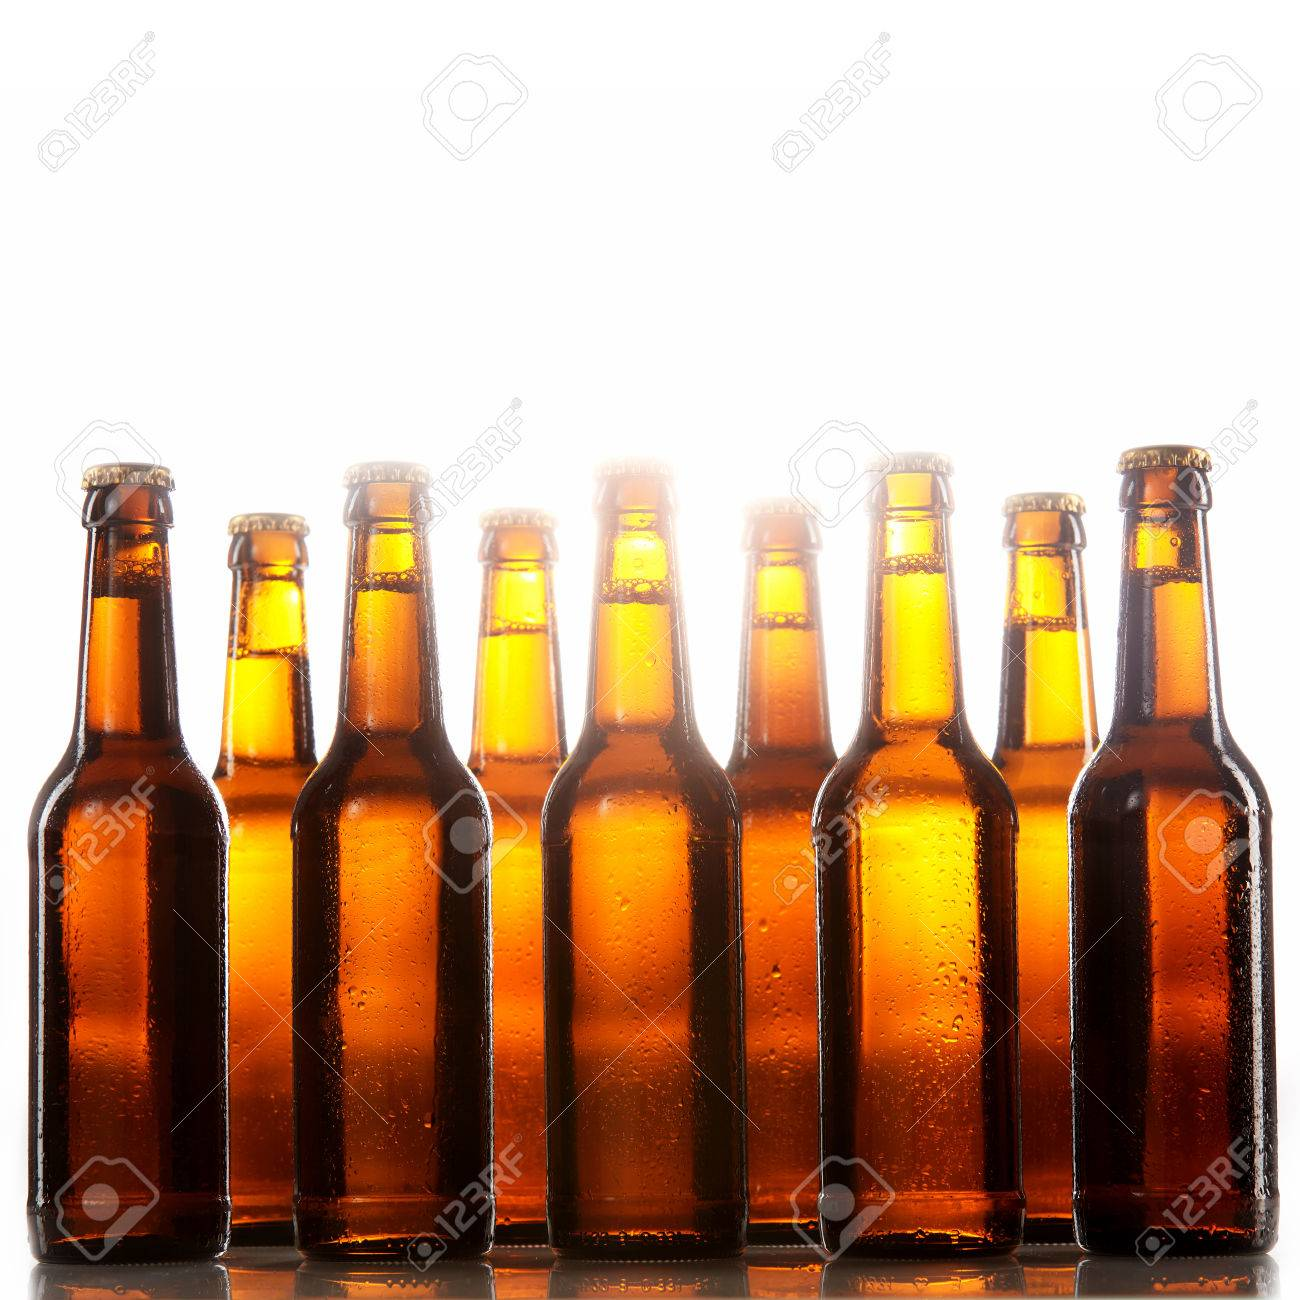 Tall beer bottles with no labels and metal caps stand two rows